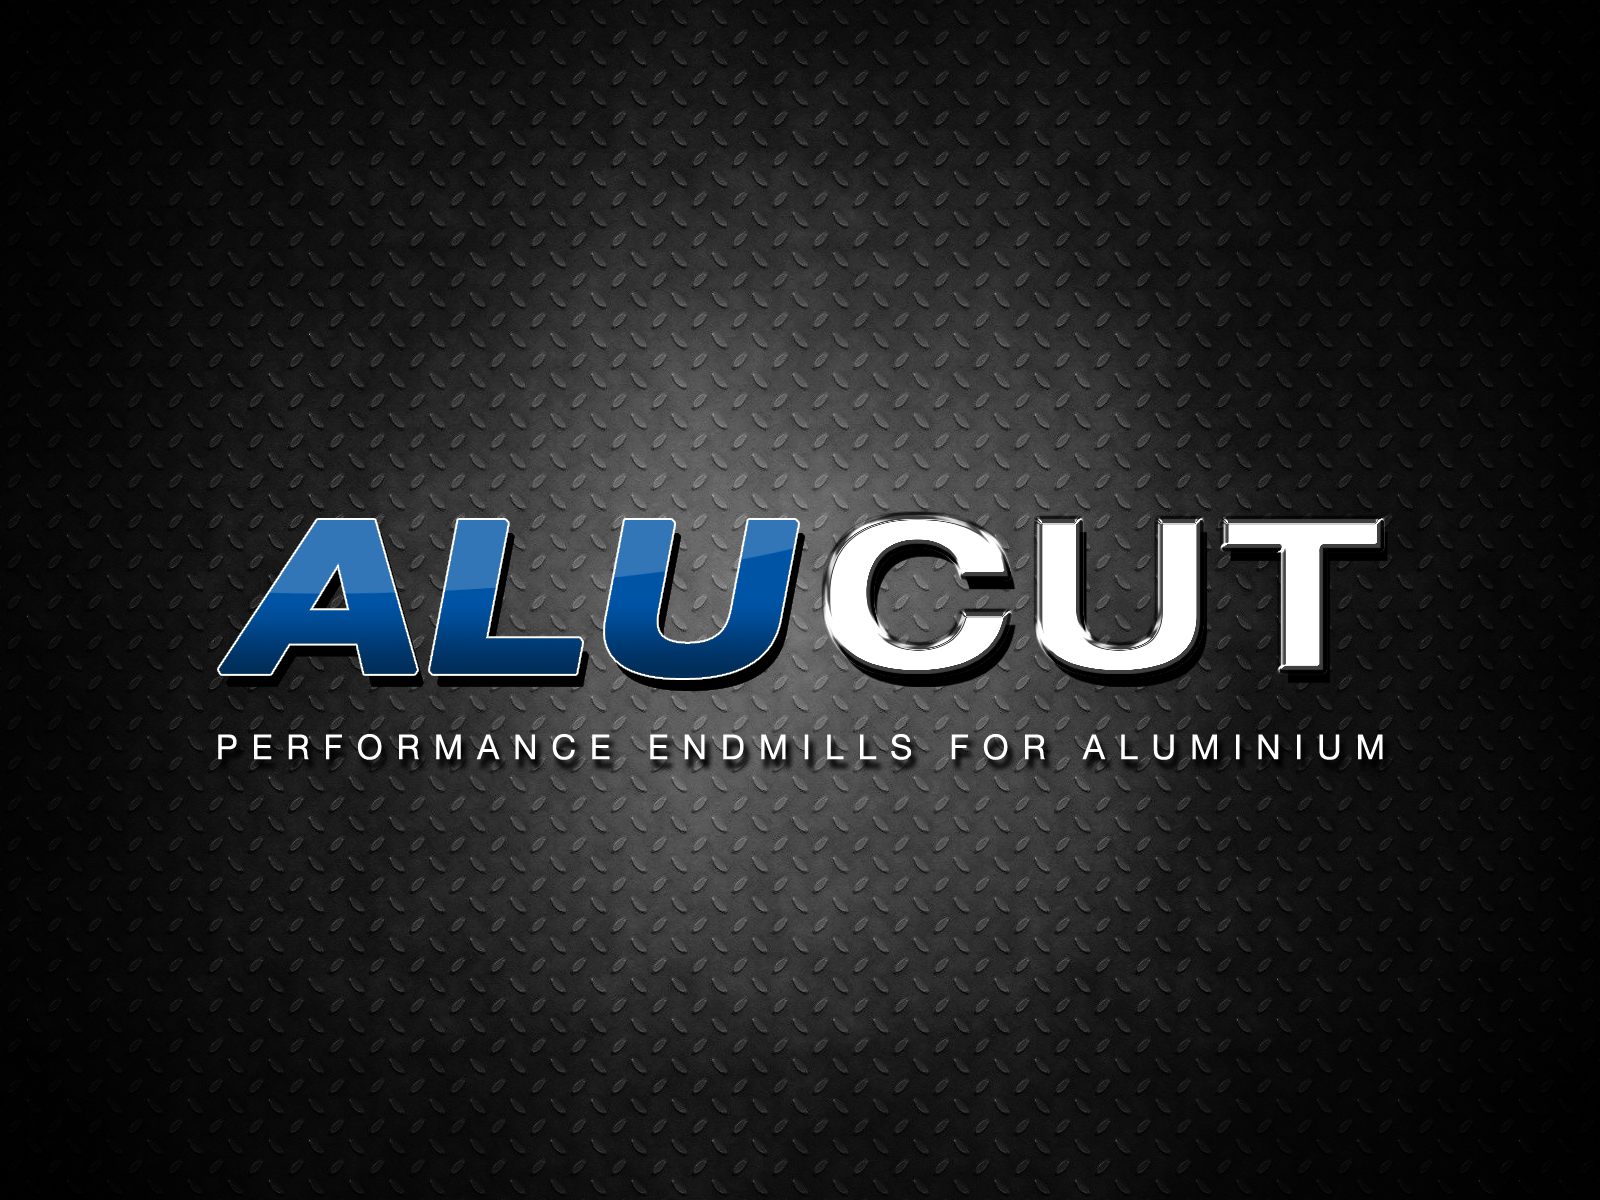 alucut - 2 & 3 Flute Solid Carbide Endmills With Geometry Specifically Designed For Use on Aluminium Machining